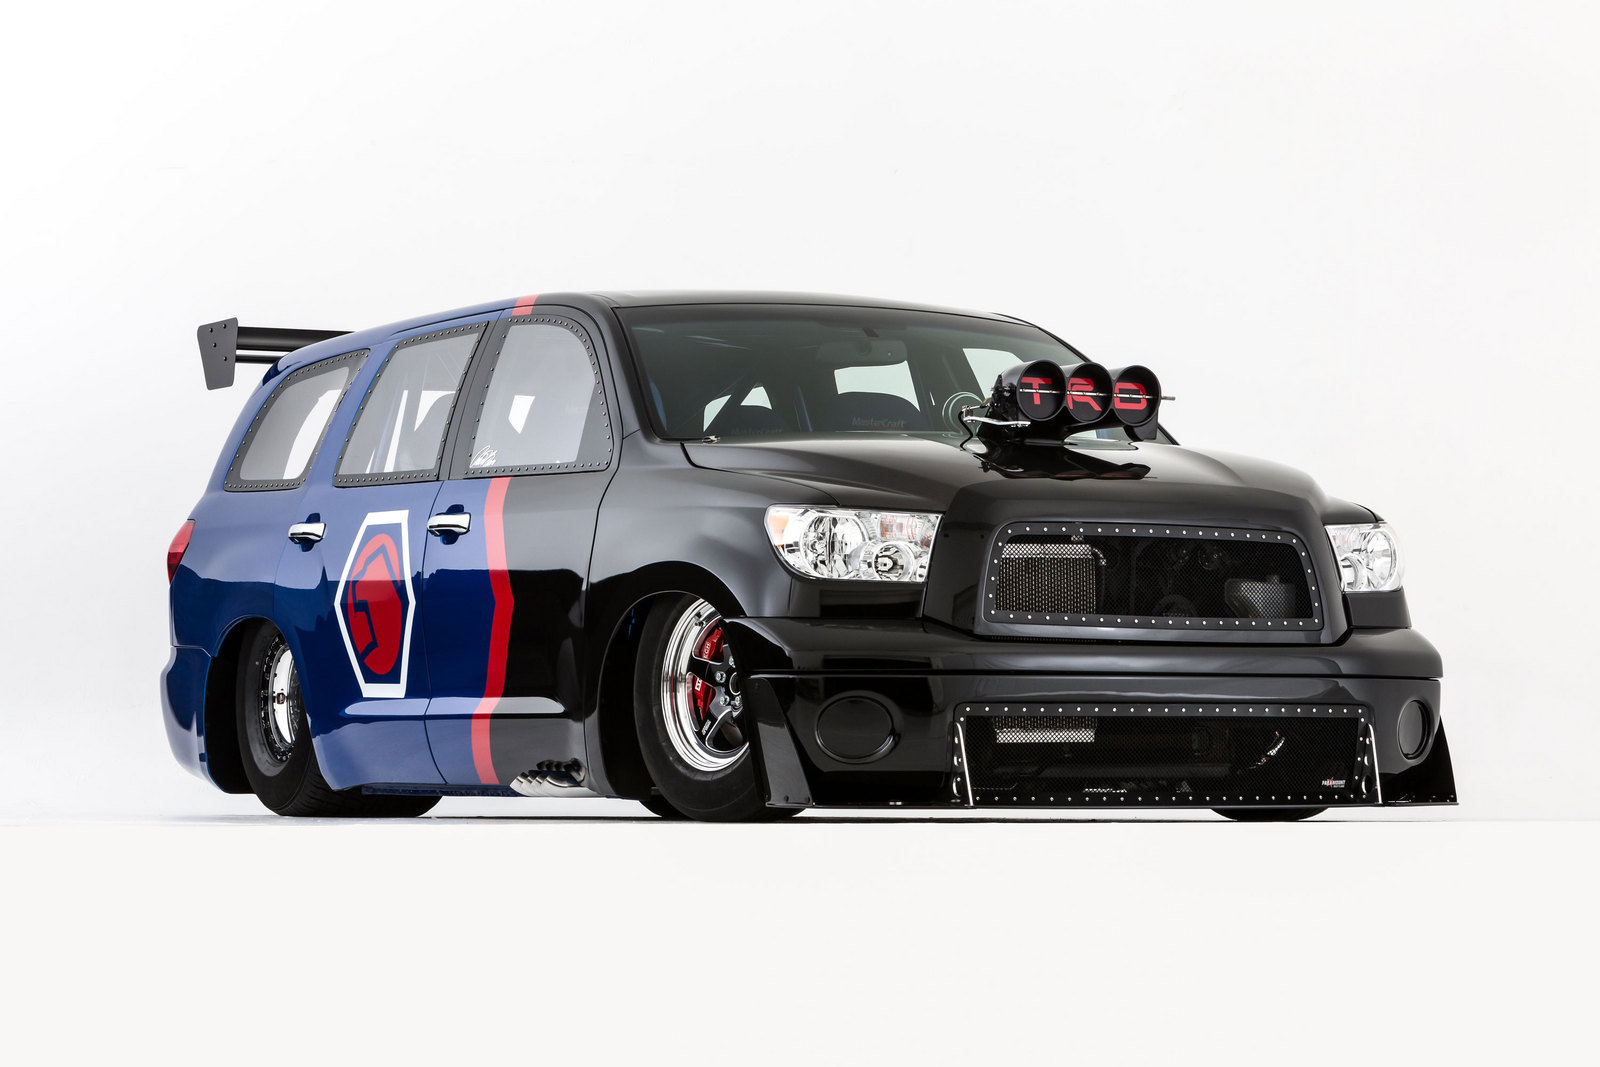 2013 Toyota Sequoia Family Dragster Concept By Antron